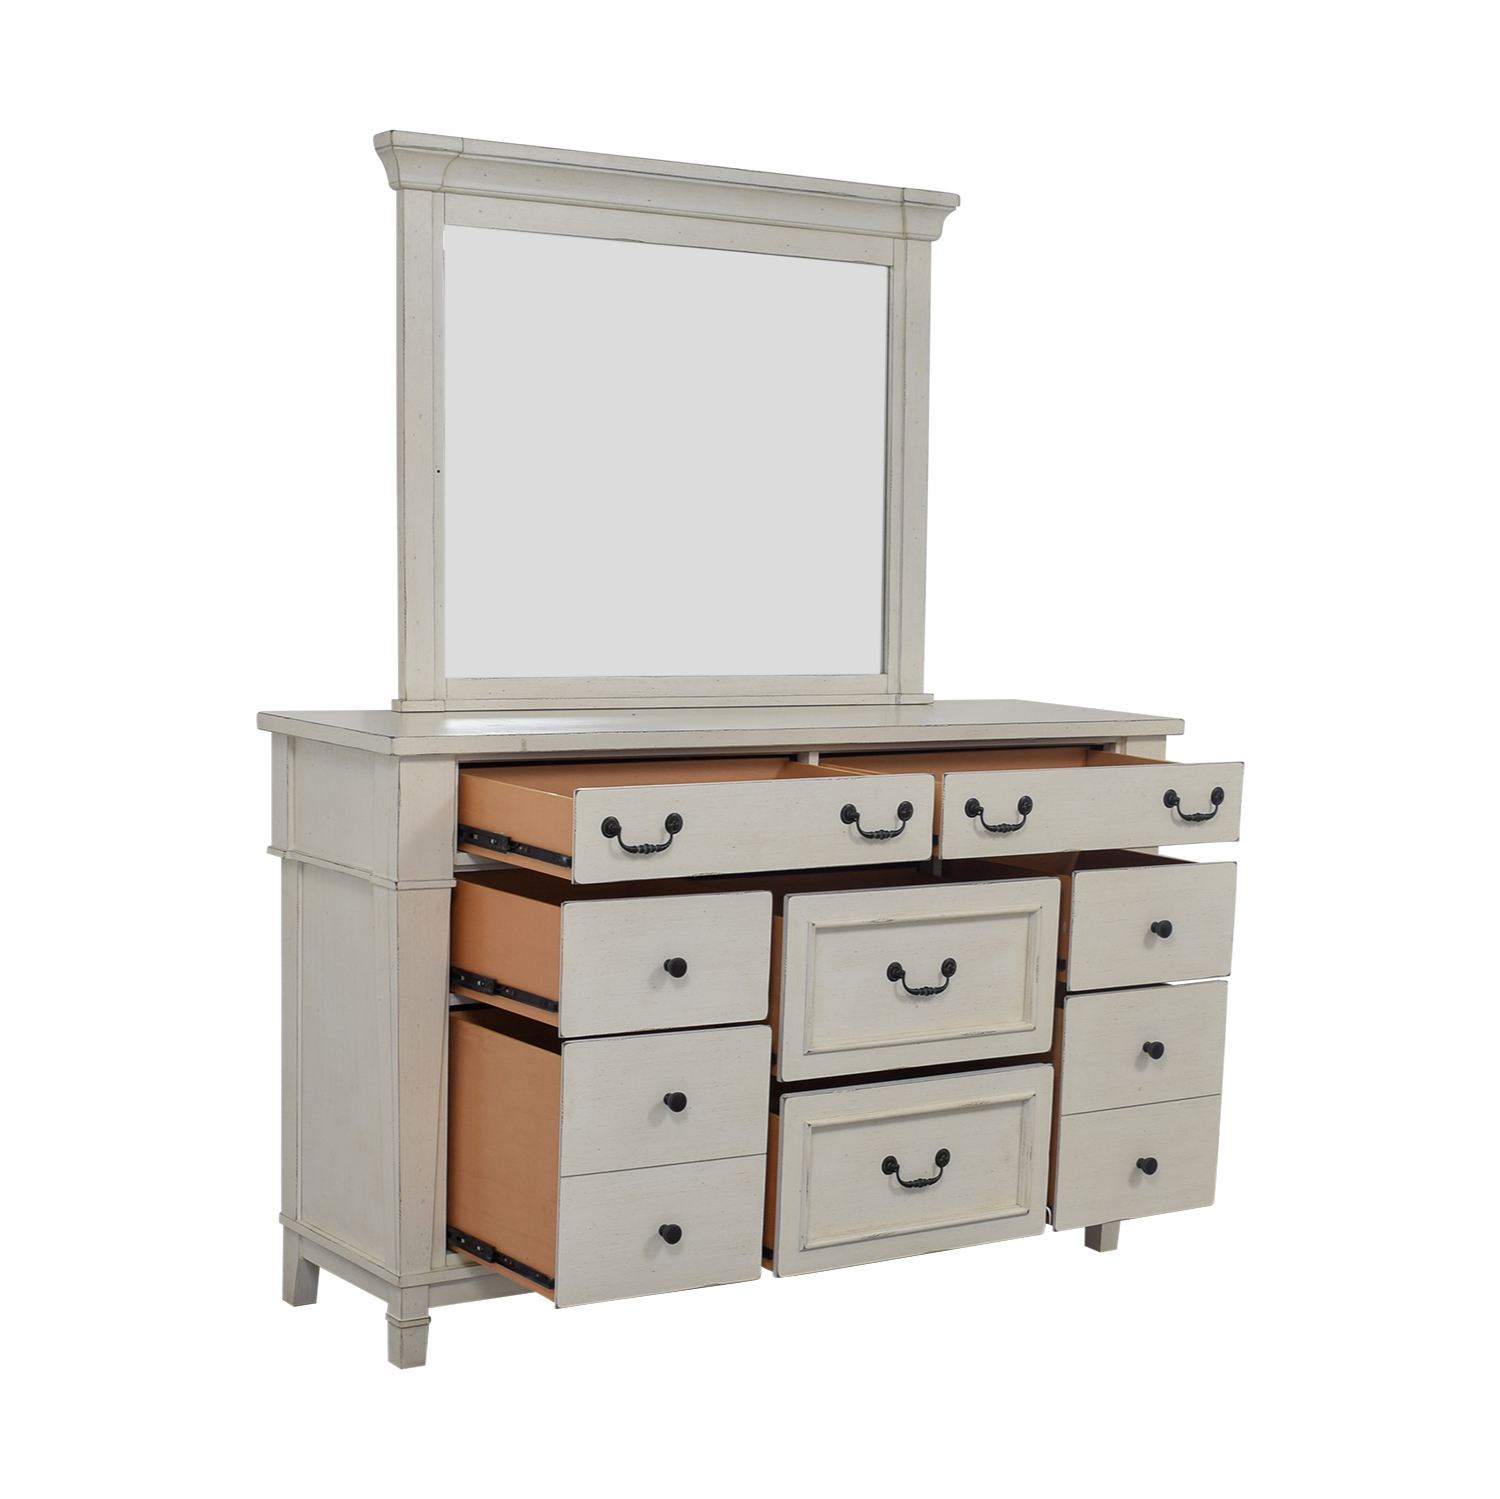 Kaiser Furniture Kaiser Furniture White Eight-Drawer Dresser and Mirror white